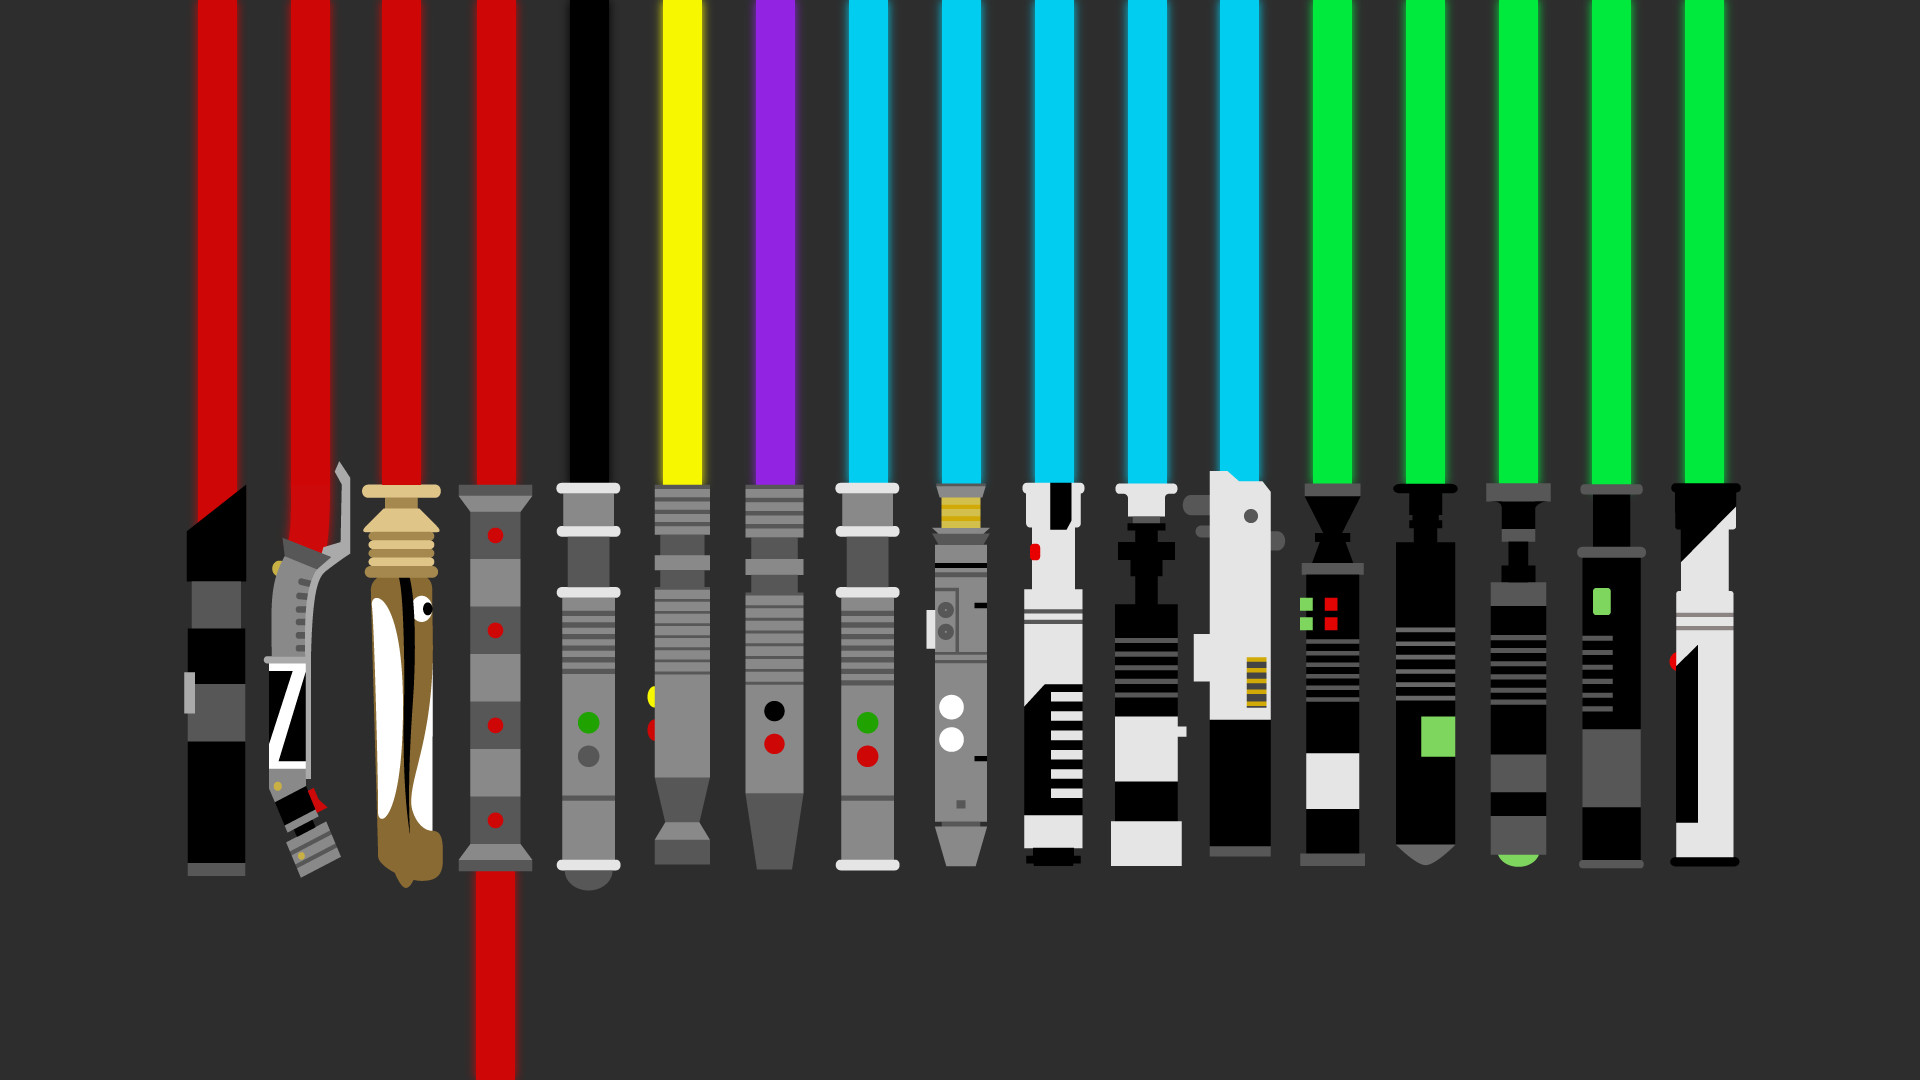 1920x1080 Vectored this lightsaber wallpaper - more info and resolutions in the  description (x-post